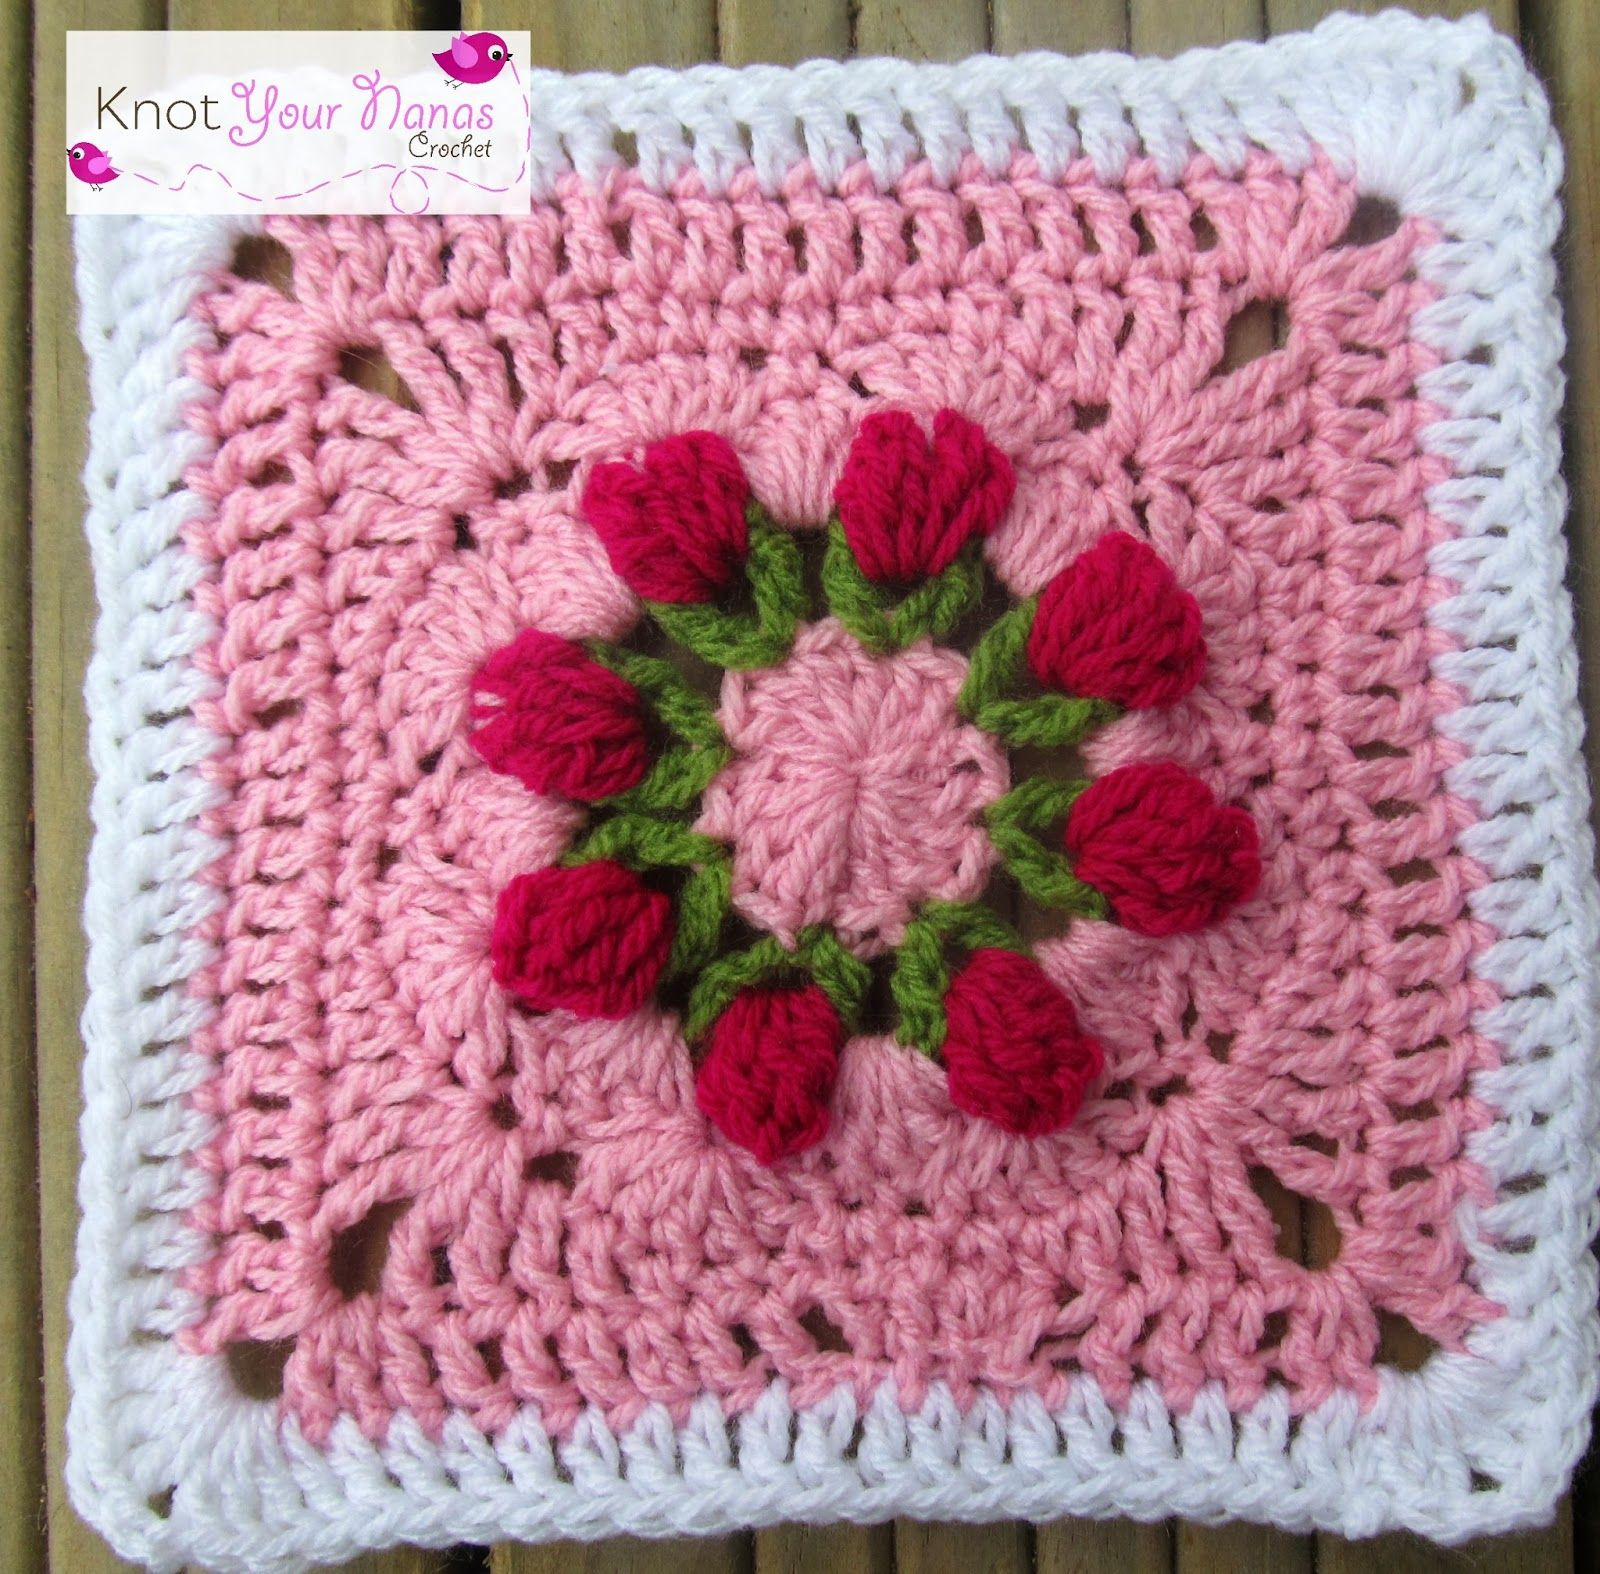 Free crochet patterns from Knot Your Nana\'s Crochet. Description ...